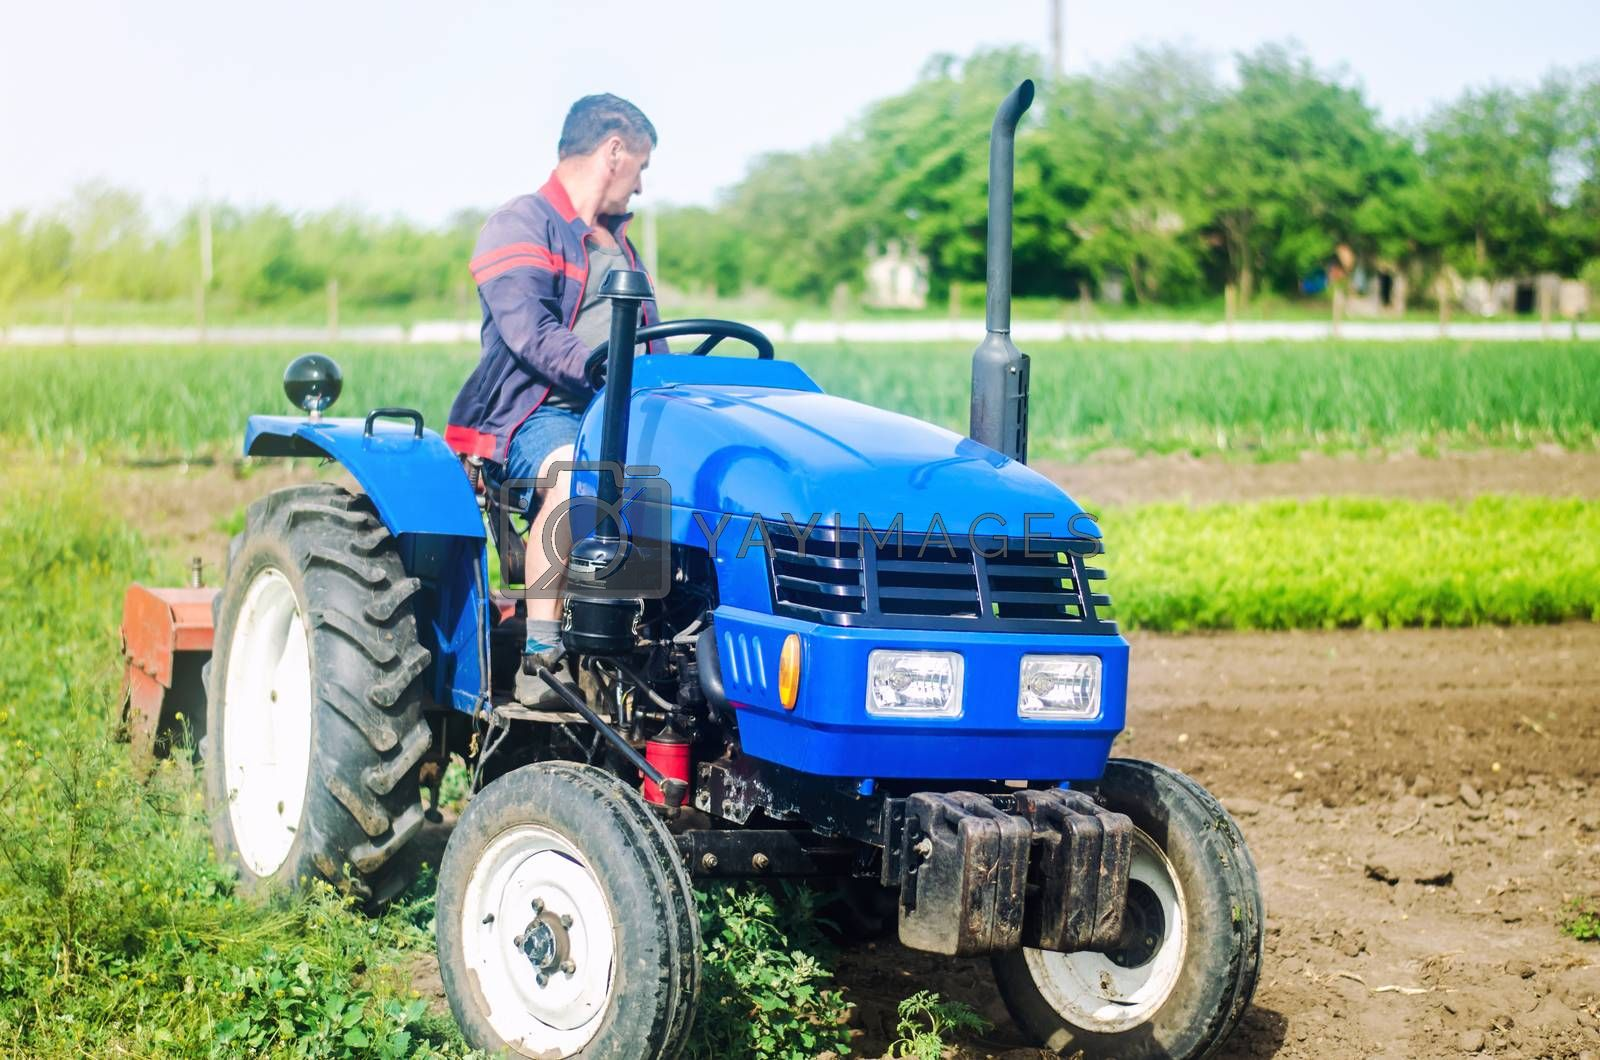 A farmer drives a tractor while working on a farm field. Loosening surface, cultivating the land. Farming, agriculture. Use of agricultural machinery and equipment to simplify and speed up work.